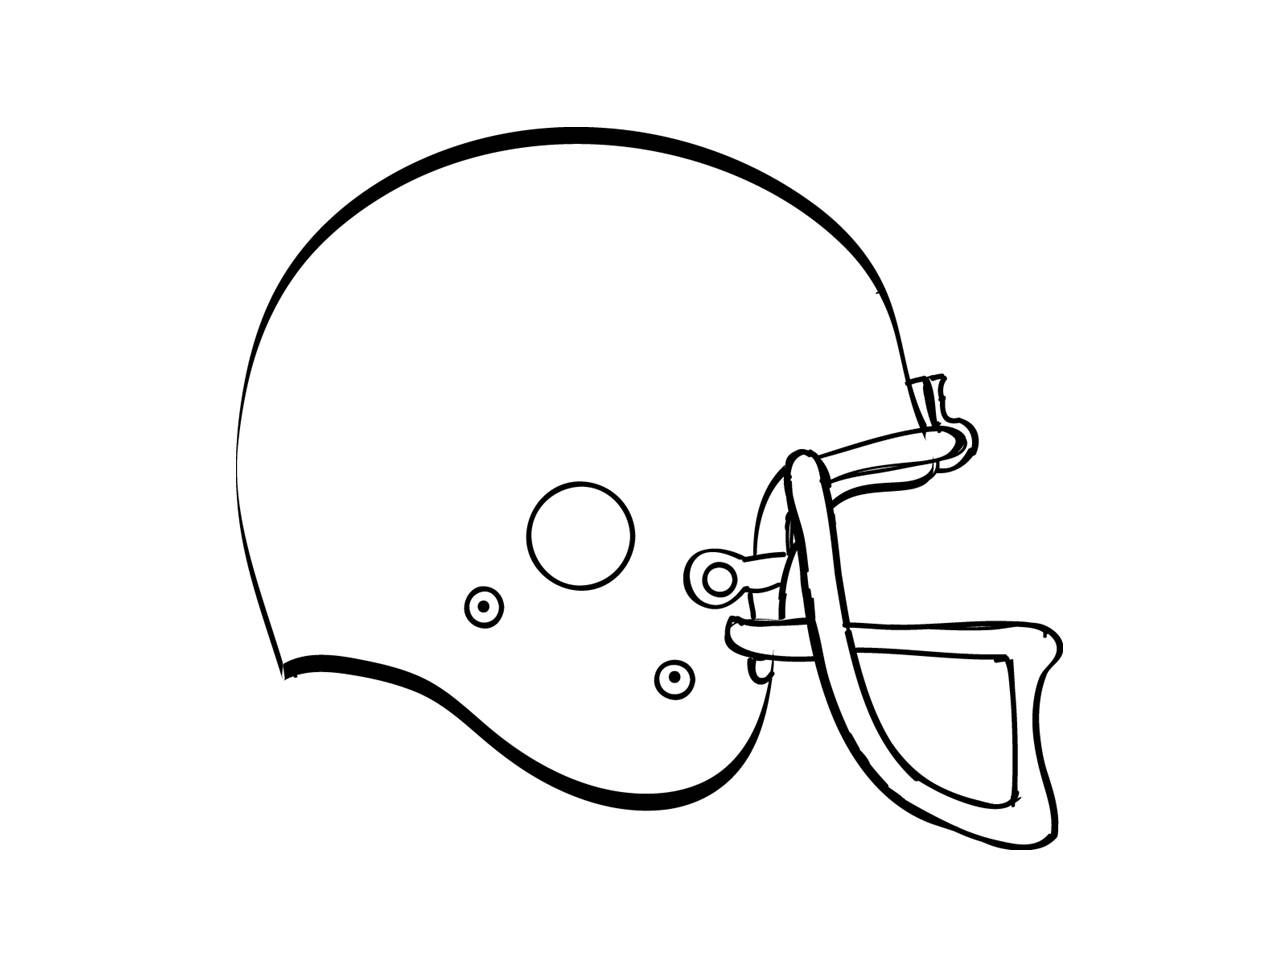 Coloring Football Helmet for Superbowl | Party Ideas | Pinterest